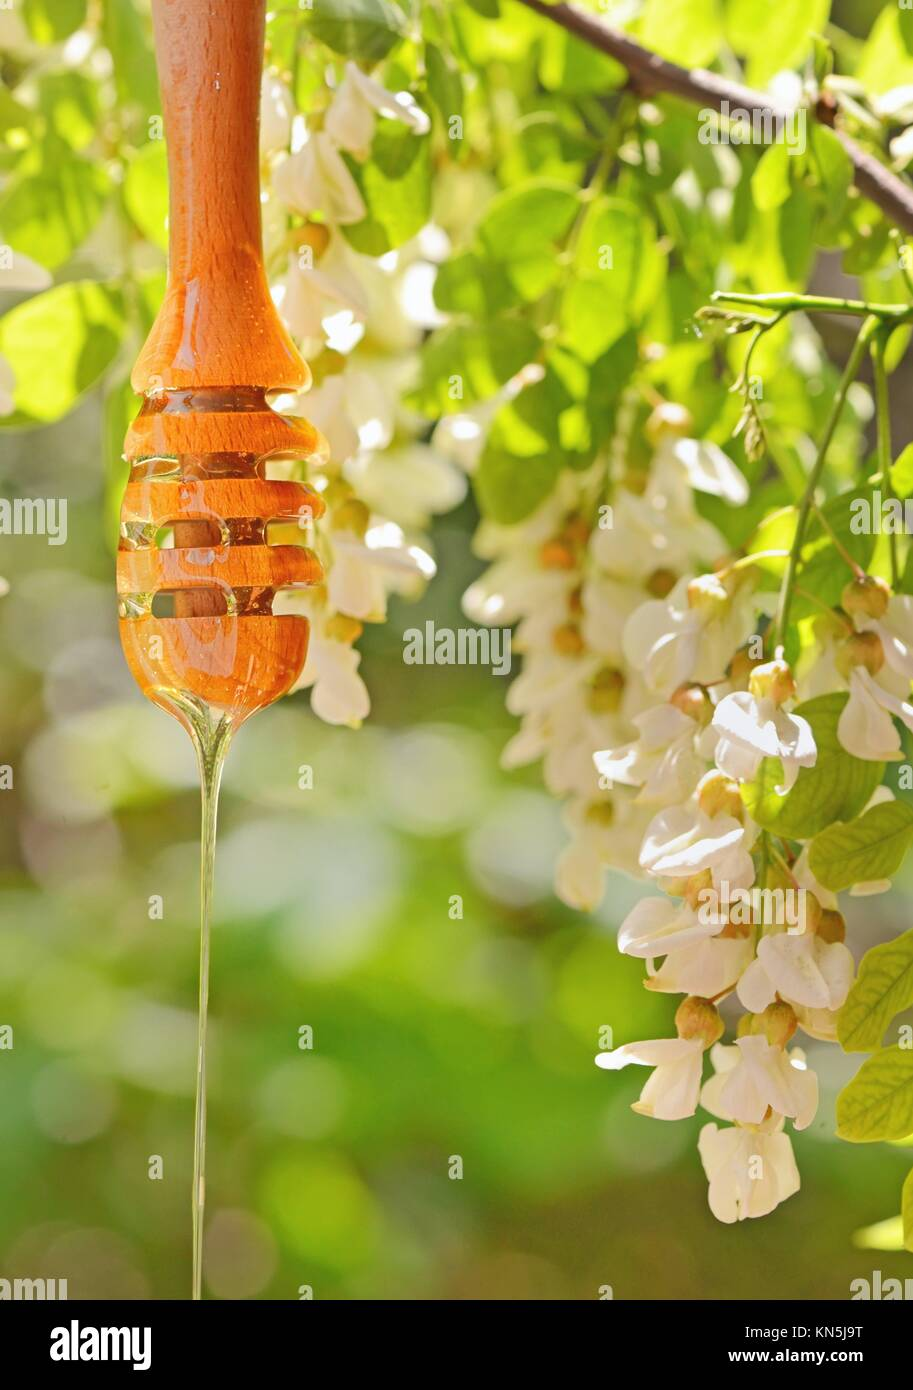 acacia honey and dripper in nature. - Stock Image